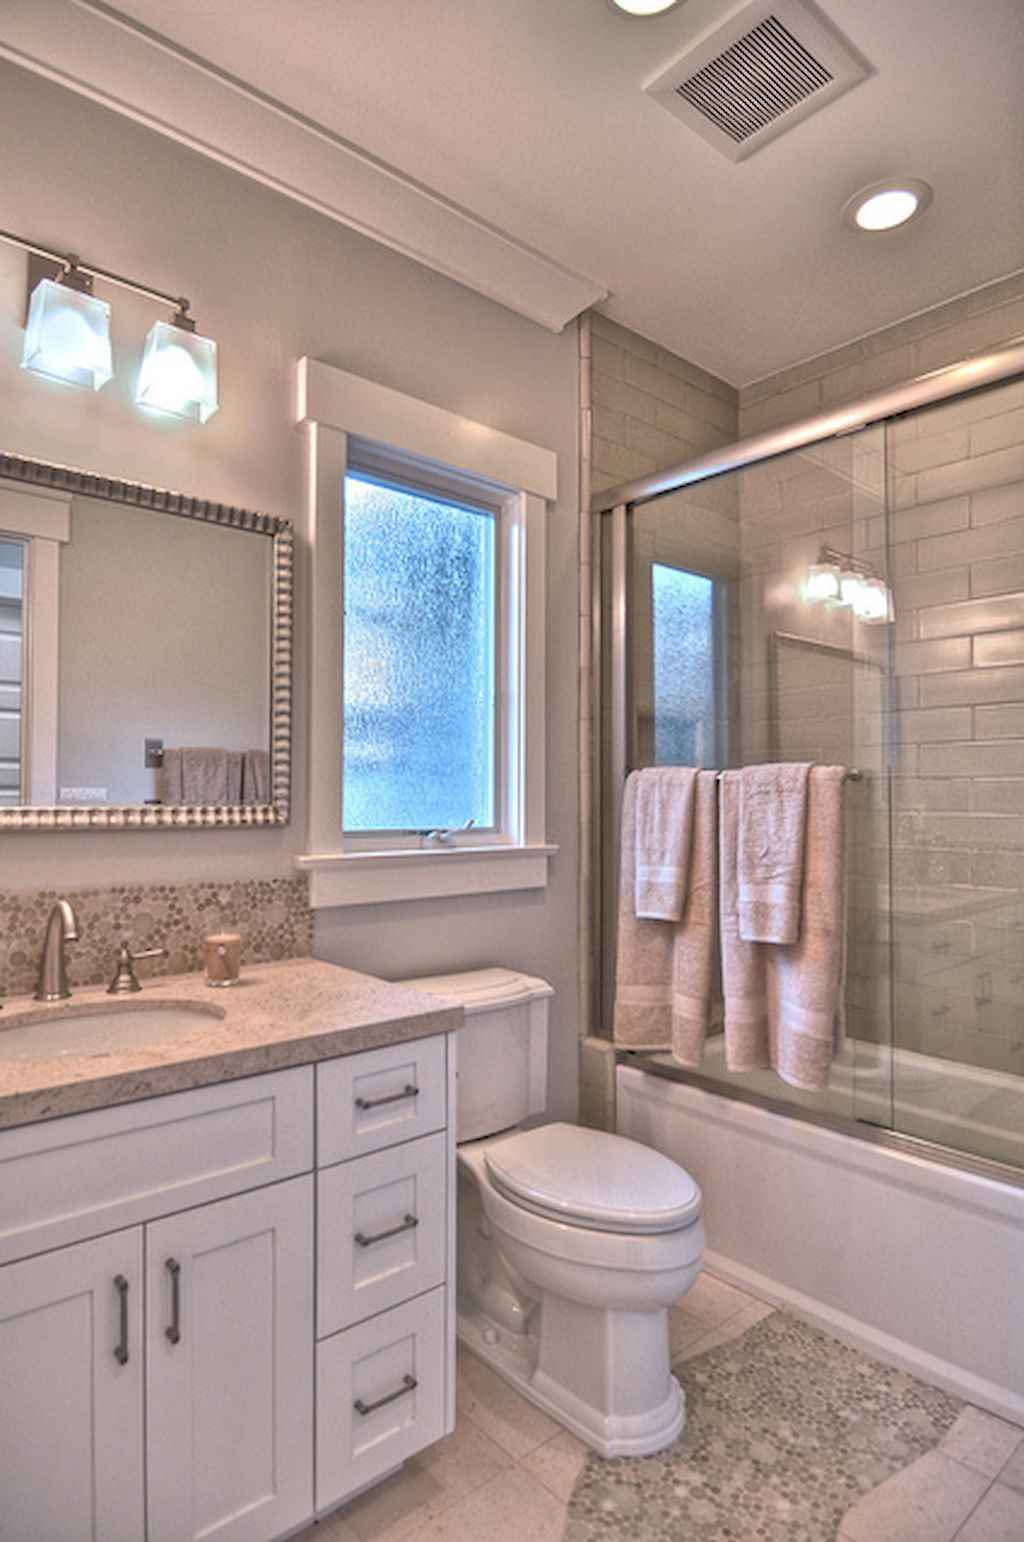 Small bathroom remodel ideas with bathub (16) - HomeSpecially